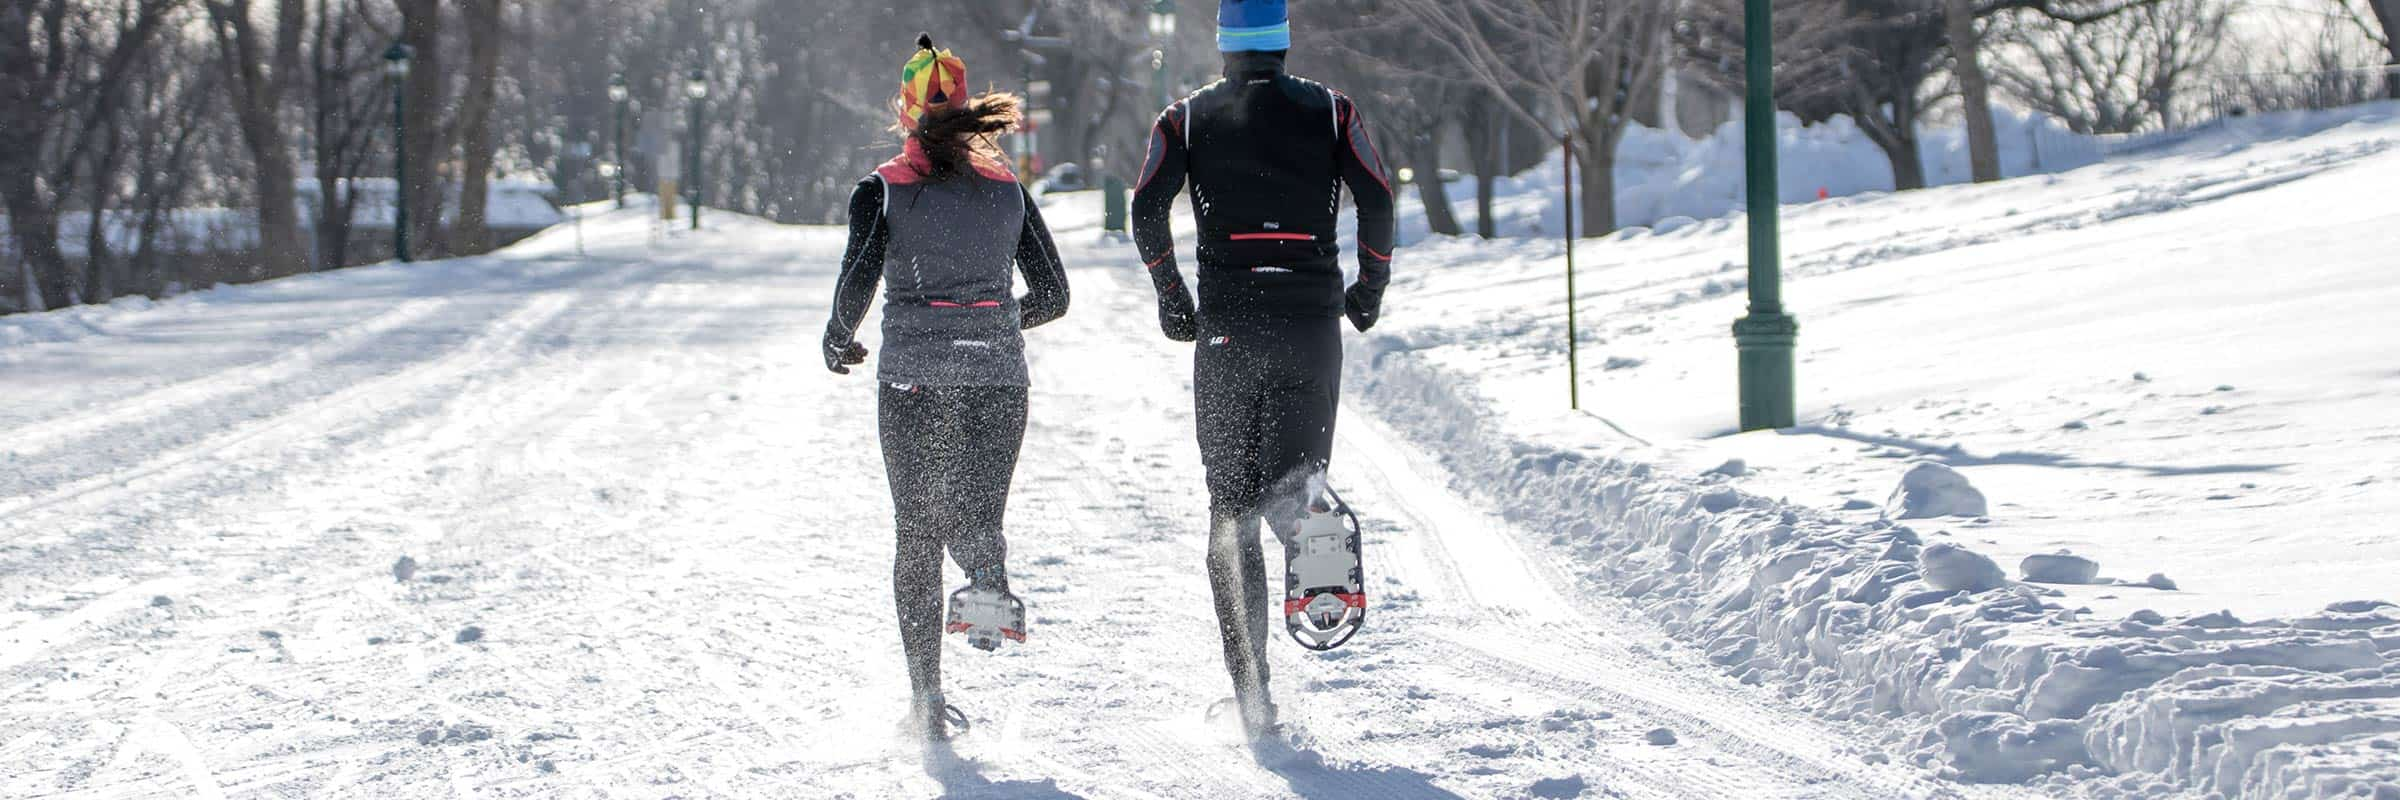 atlas, Garneau, MSR, snowshoes, tubbs. How to Choose the Right Snowshoes